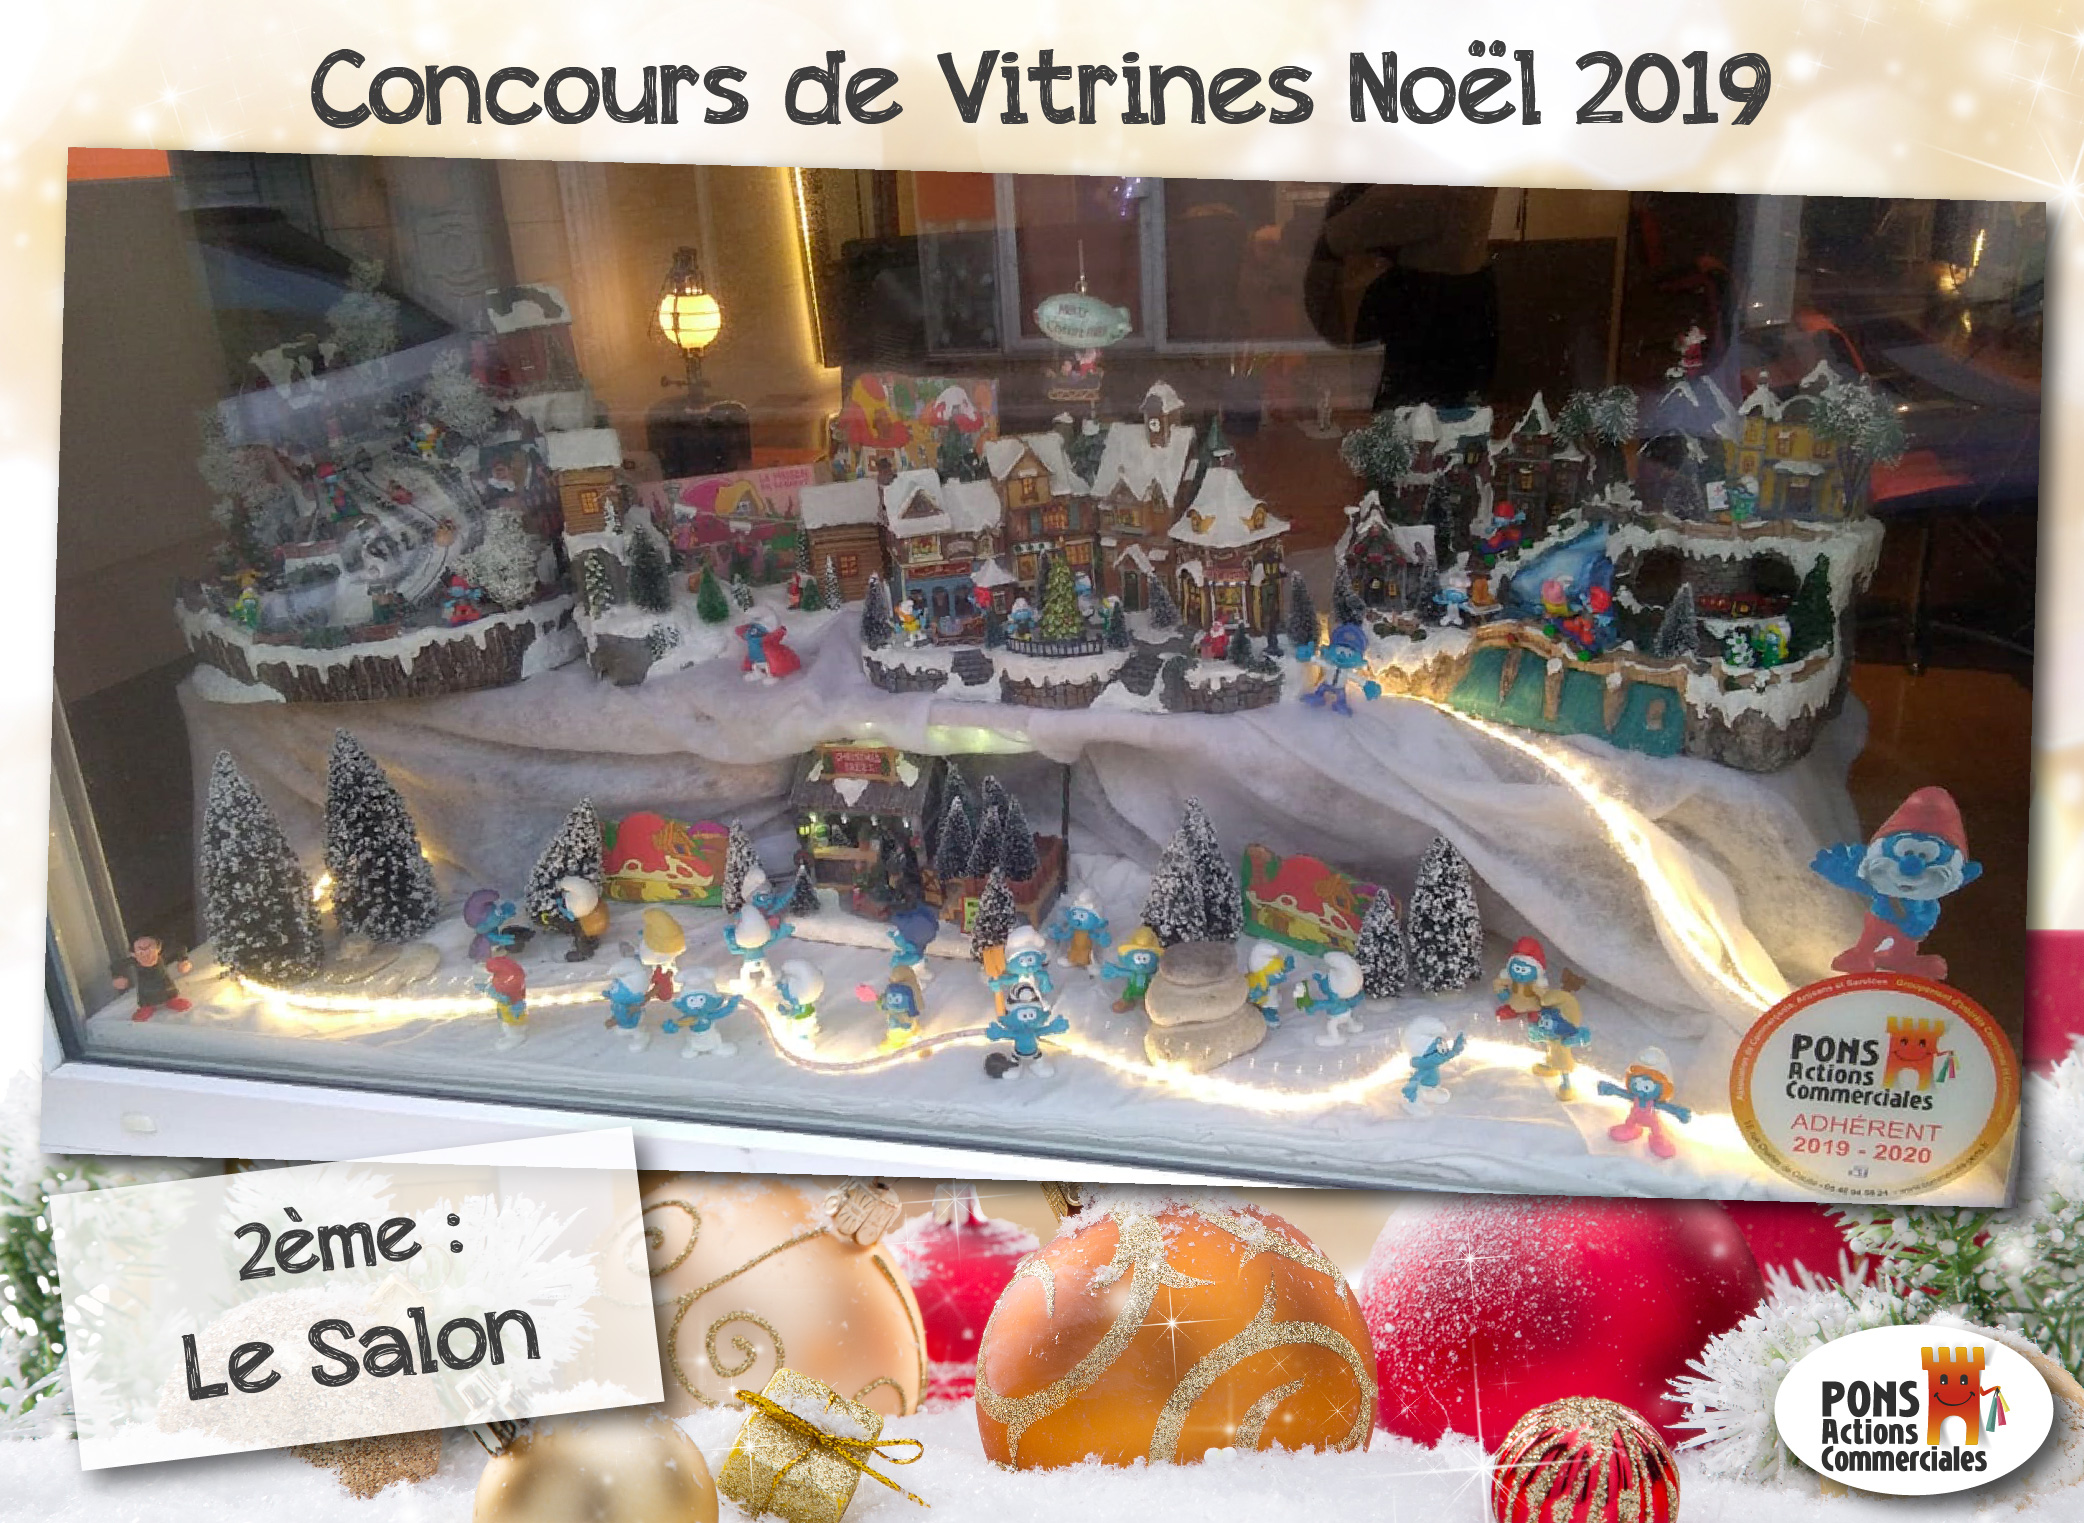 Pons Actions Commerciales - Vitrines2019-Gagnants - Le Salon